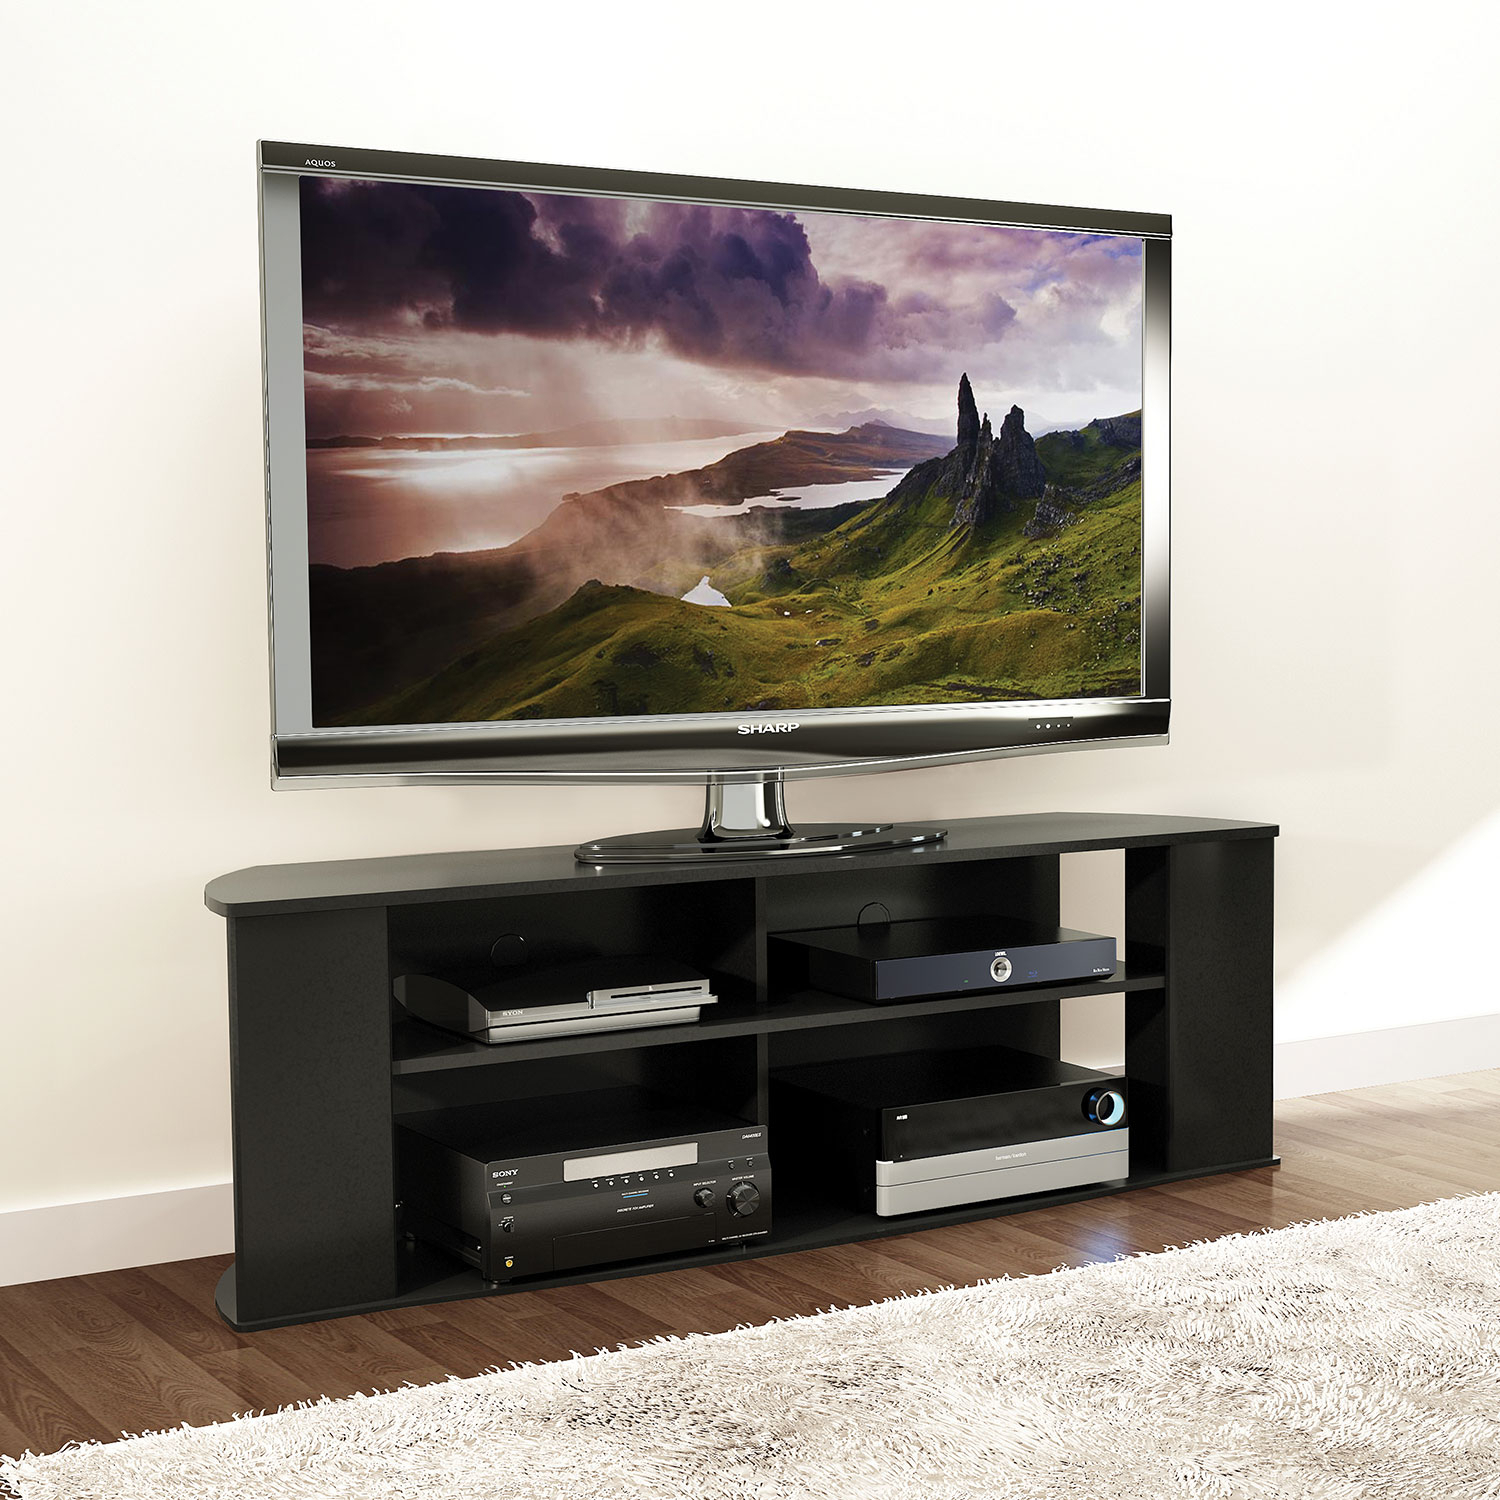 "Prefac Essentials 60"" Tv Stand   Black : Tv Stands   Best Buy Canada With Regard To Valencia 60 Inch Tv Stands (Photo 6 of 30)"